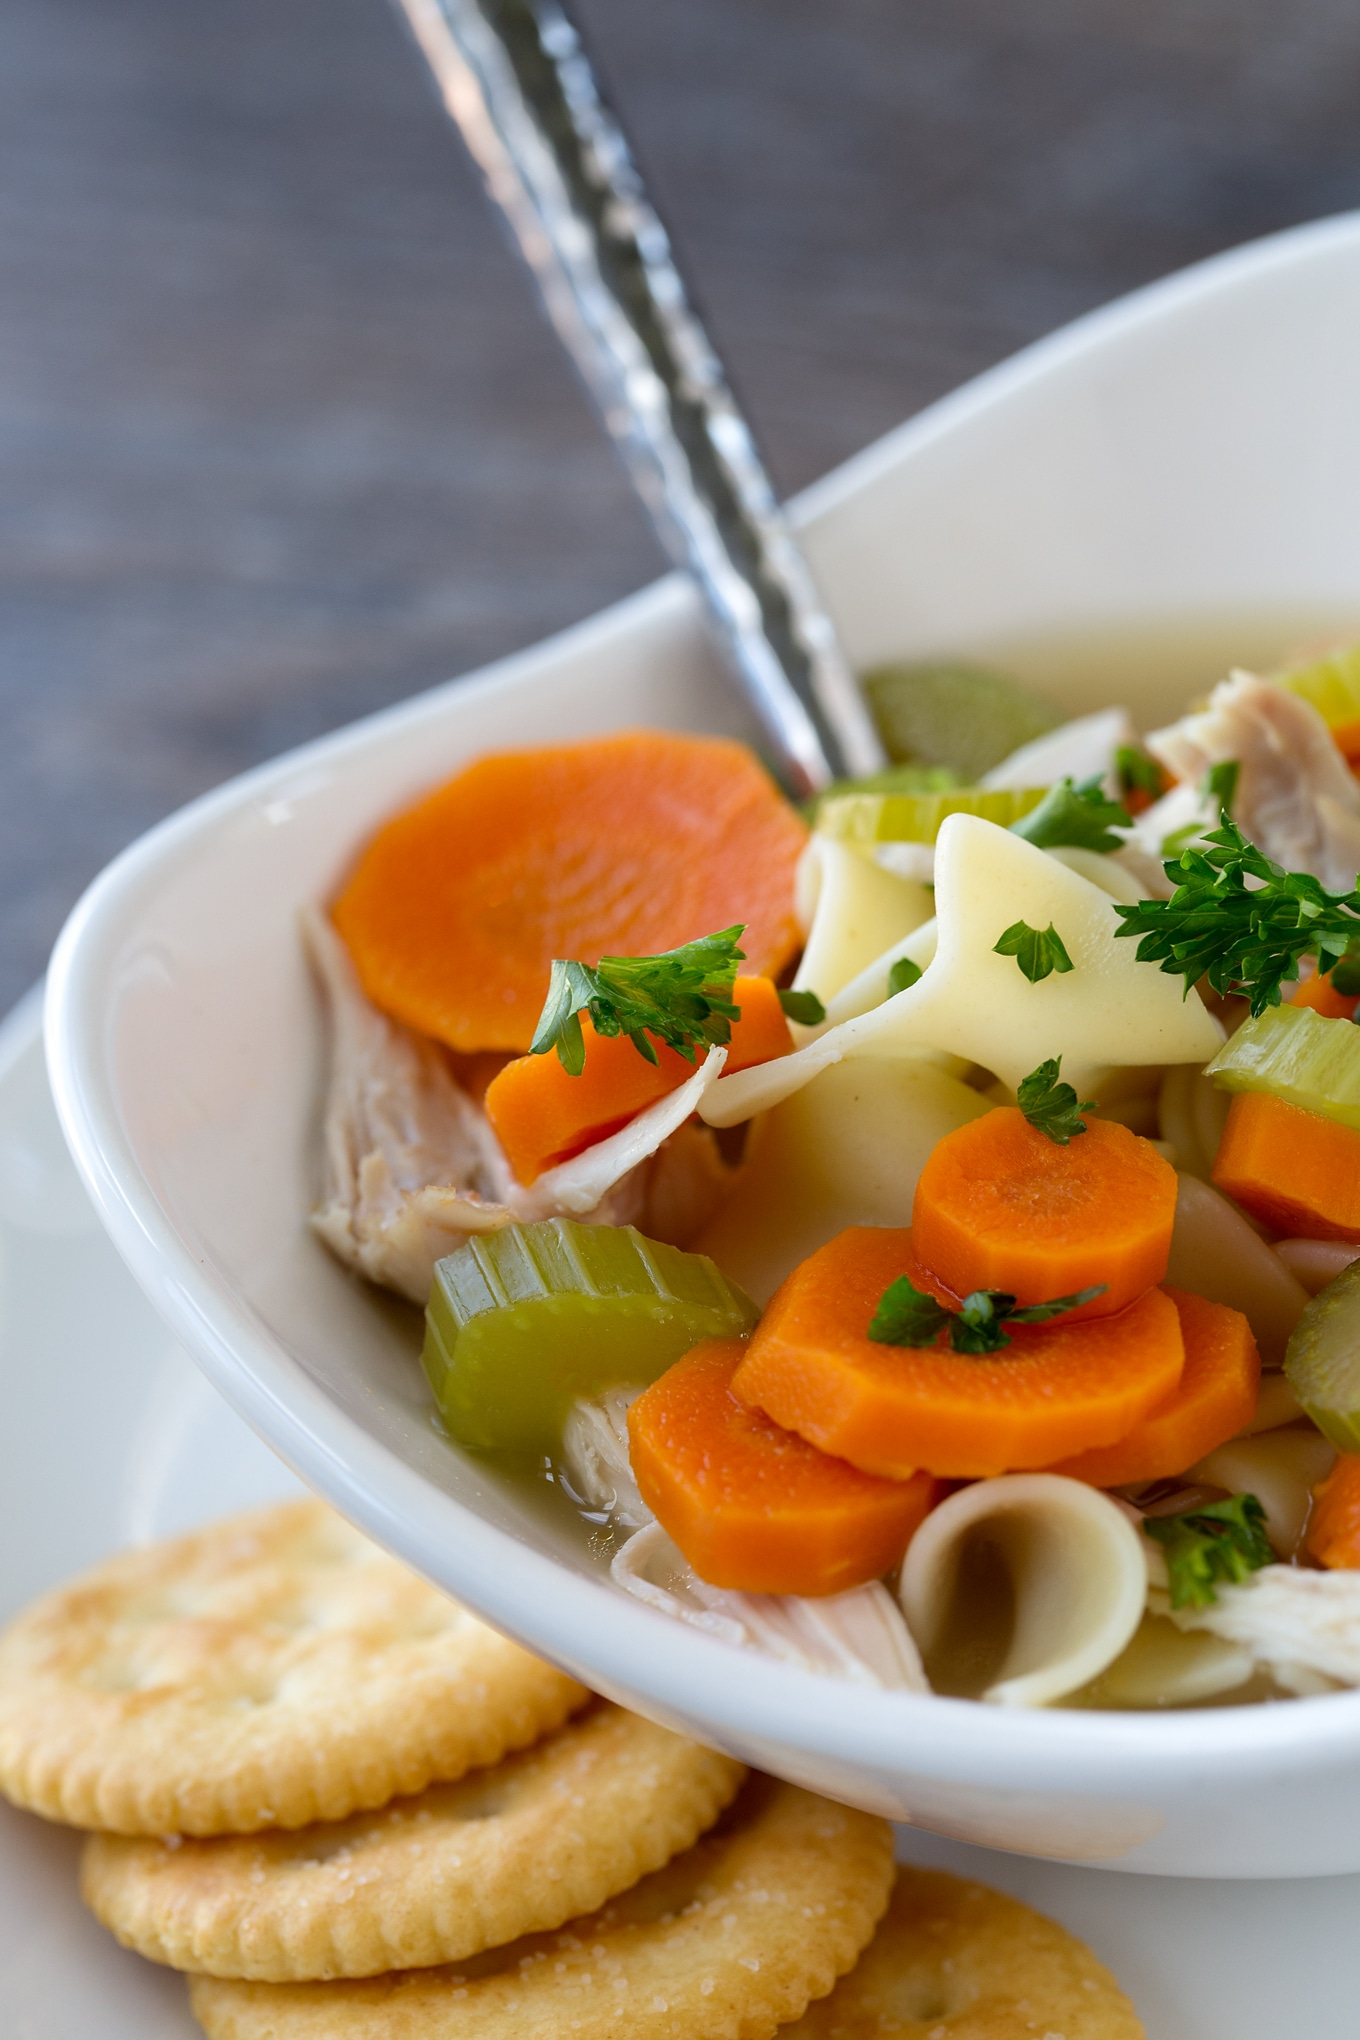 This simple and comforting Homemade Chicken Noodle Soup is loaded with healthy vegetables, soft noodles, and tender shredded chicken. My family loves the classic flavor and I love that it can be made quickly.